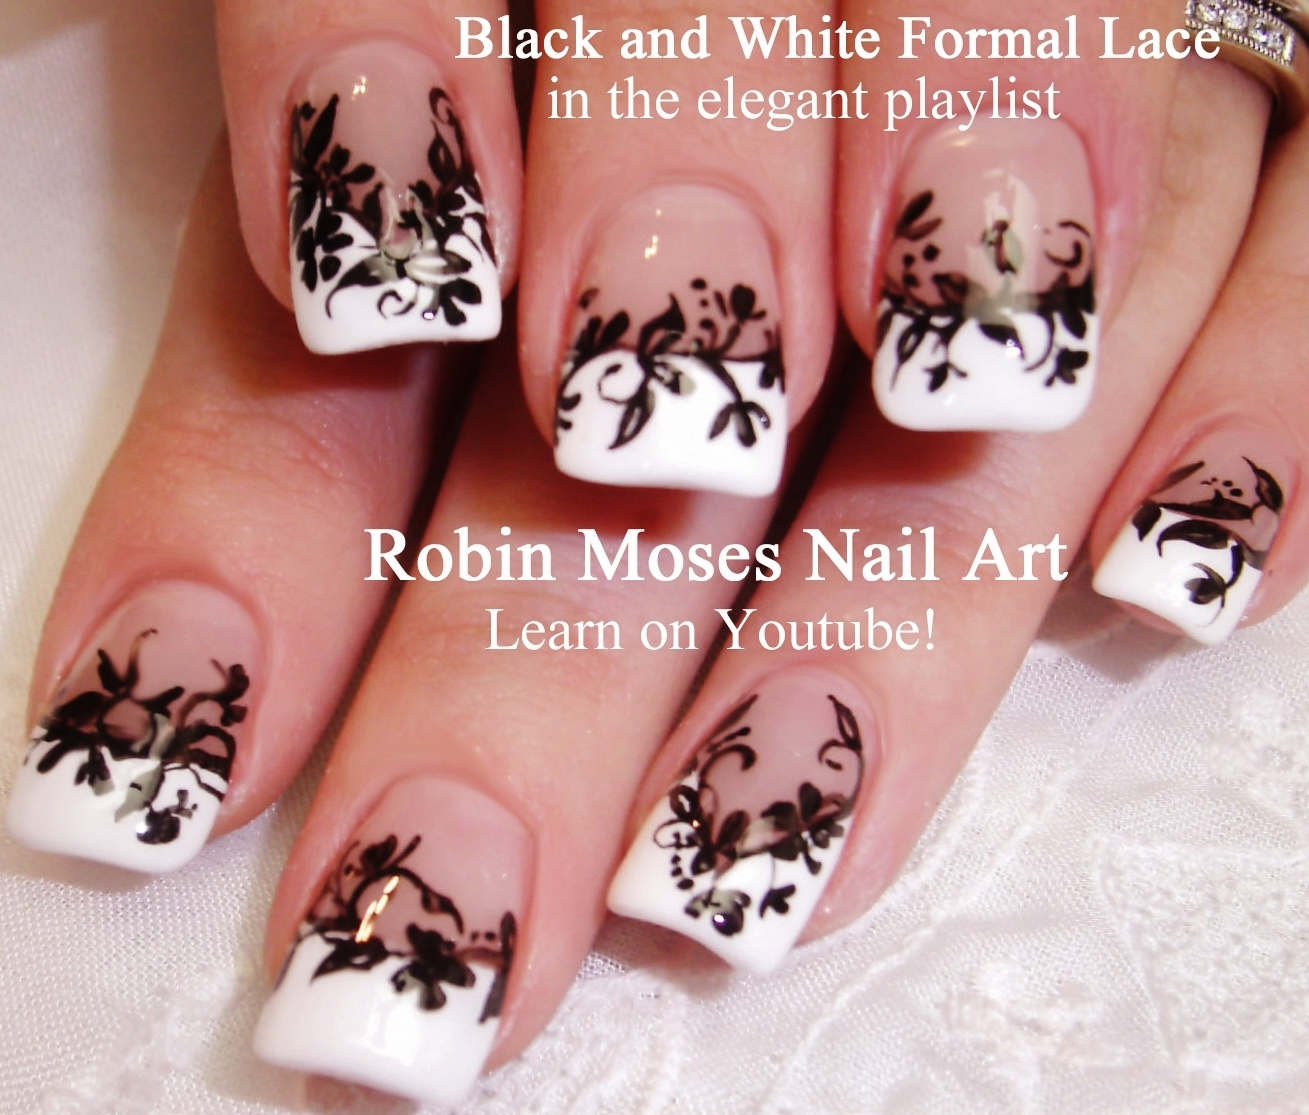 Robin moses nail art black and white nail art design tutorials black and white nail art design tutorials black and white design black and white filigree design fall nails 2015 fall trends prinsesfo Image collections